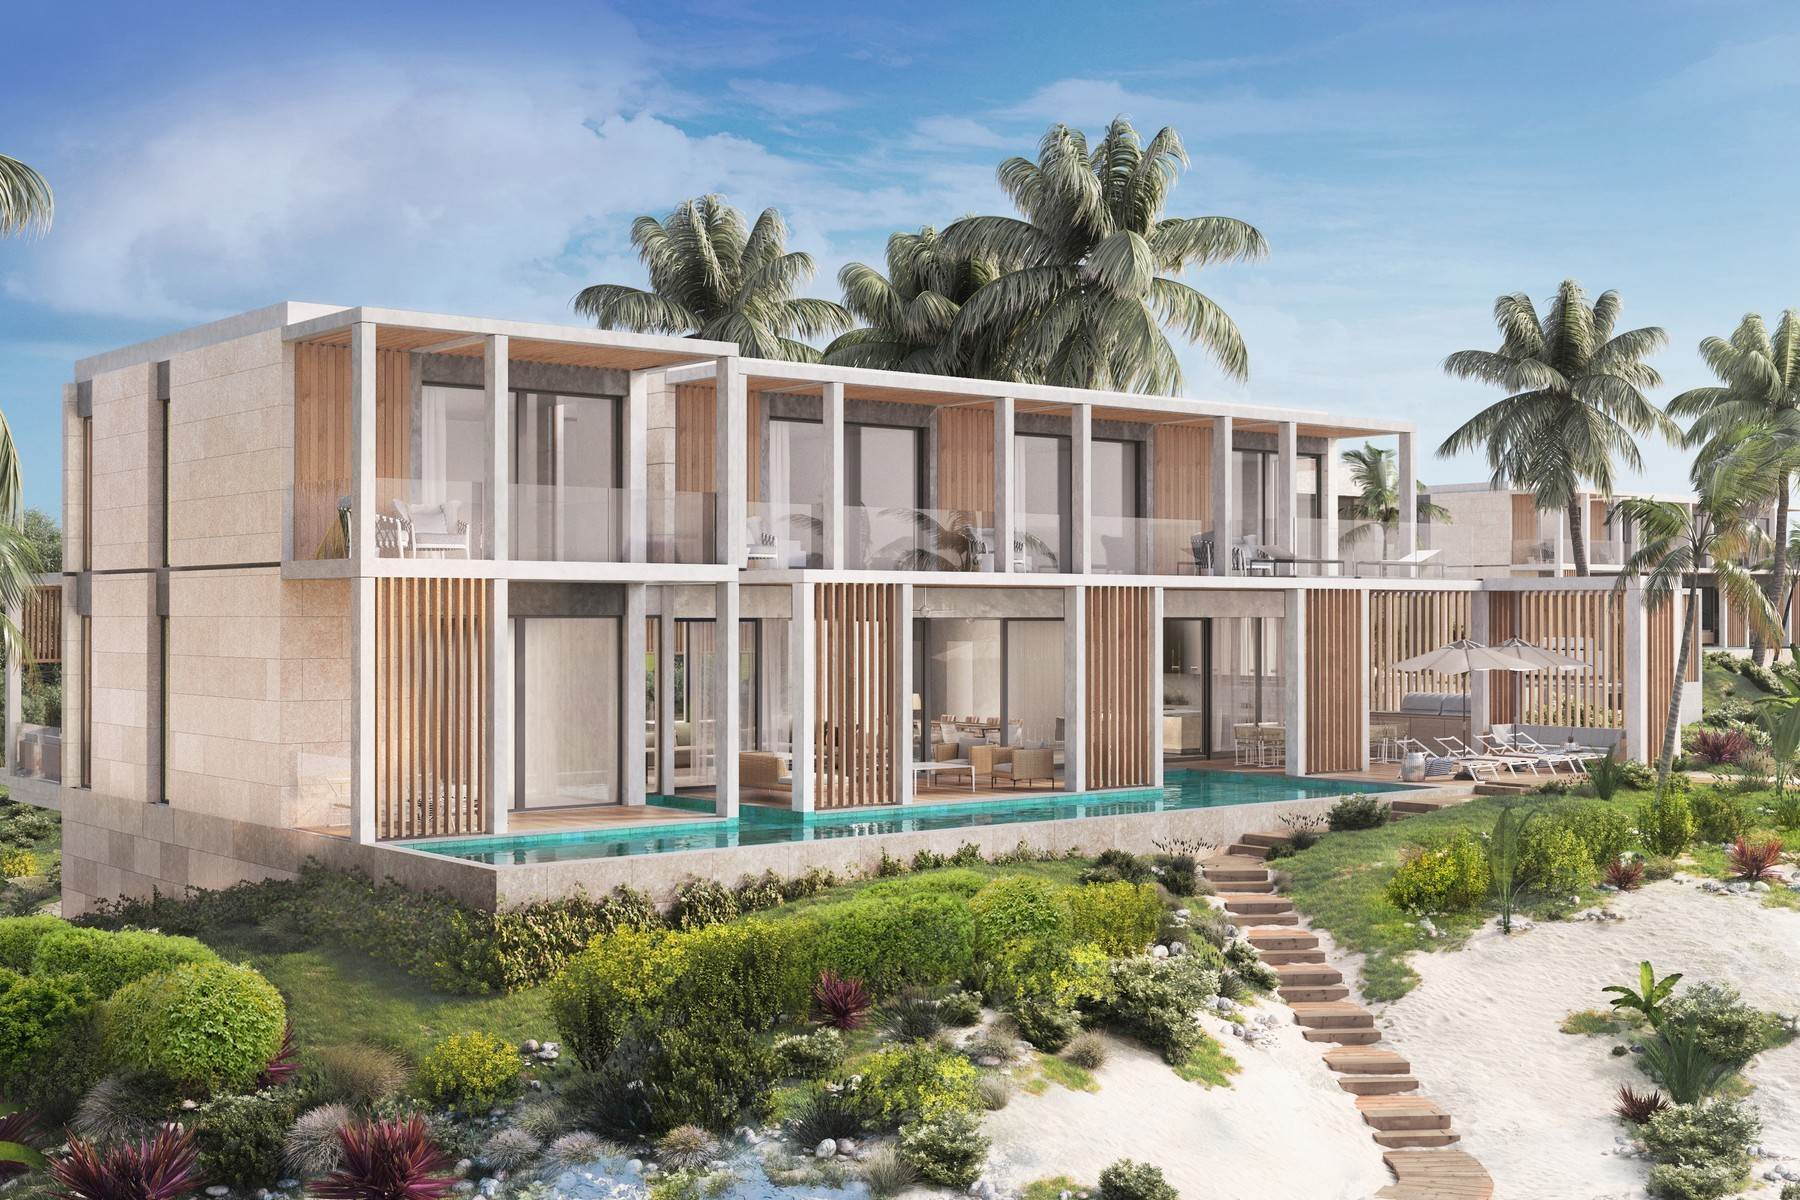 5. Single Family Homes for Sale at LONG BAY BEACH DUNE VILLA 1 AT SOUTH BANK - THE OCEAN ESTATE South Bank, Long Bay, Providenciales Turks And Caicos Islands